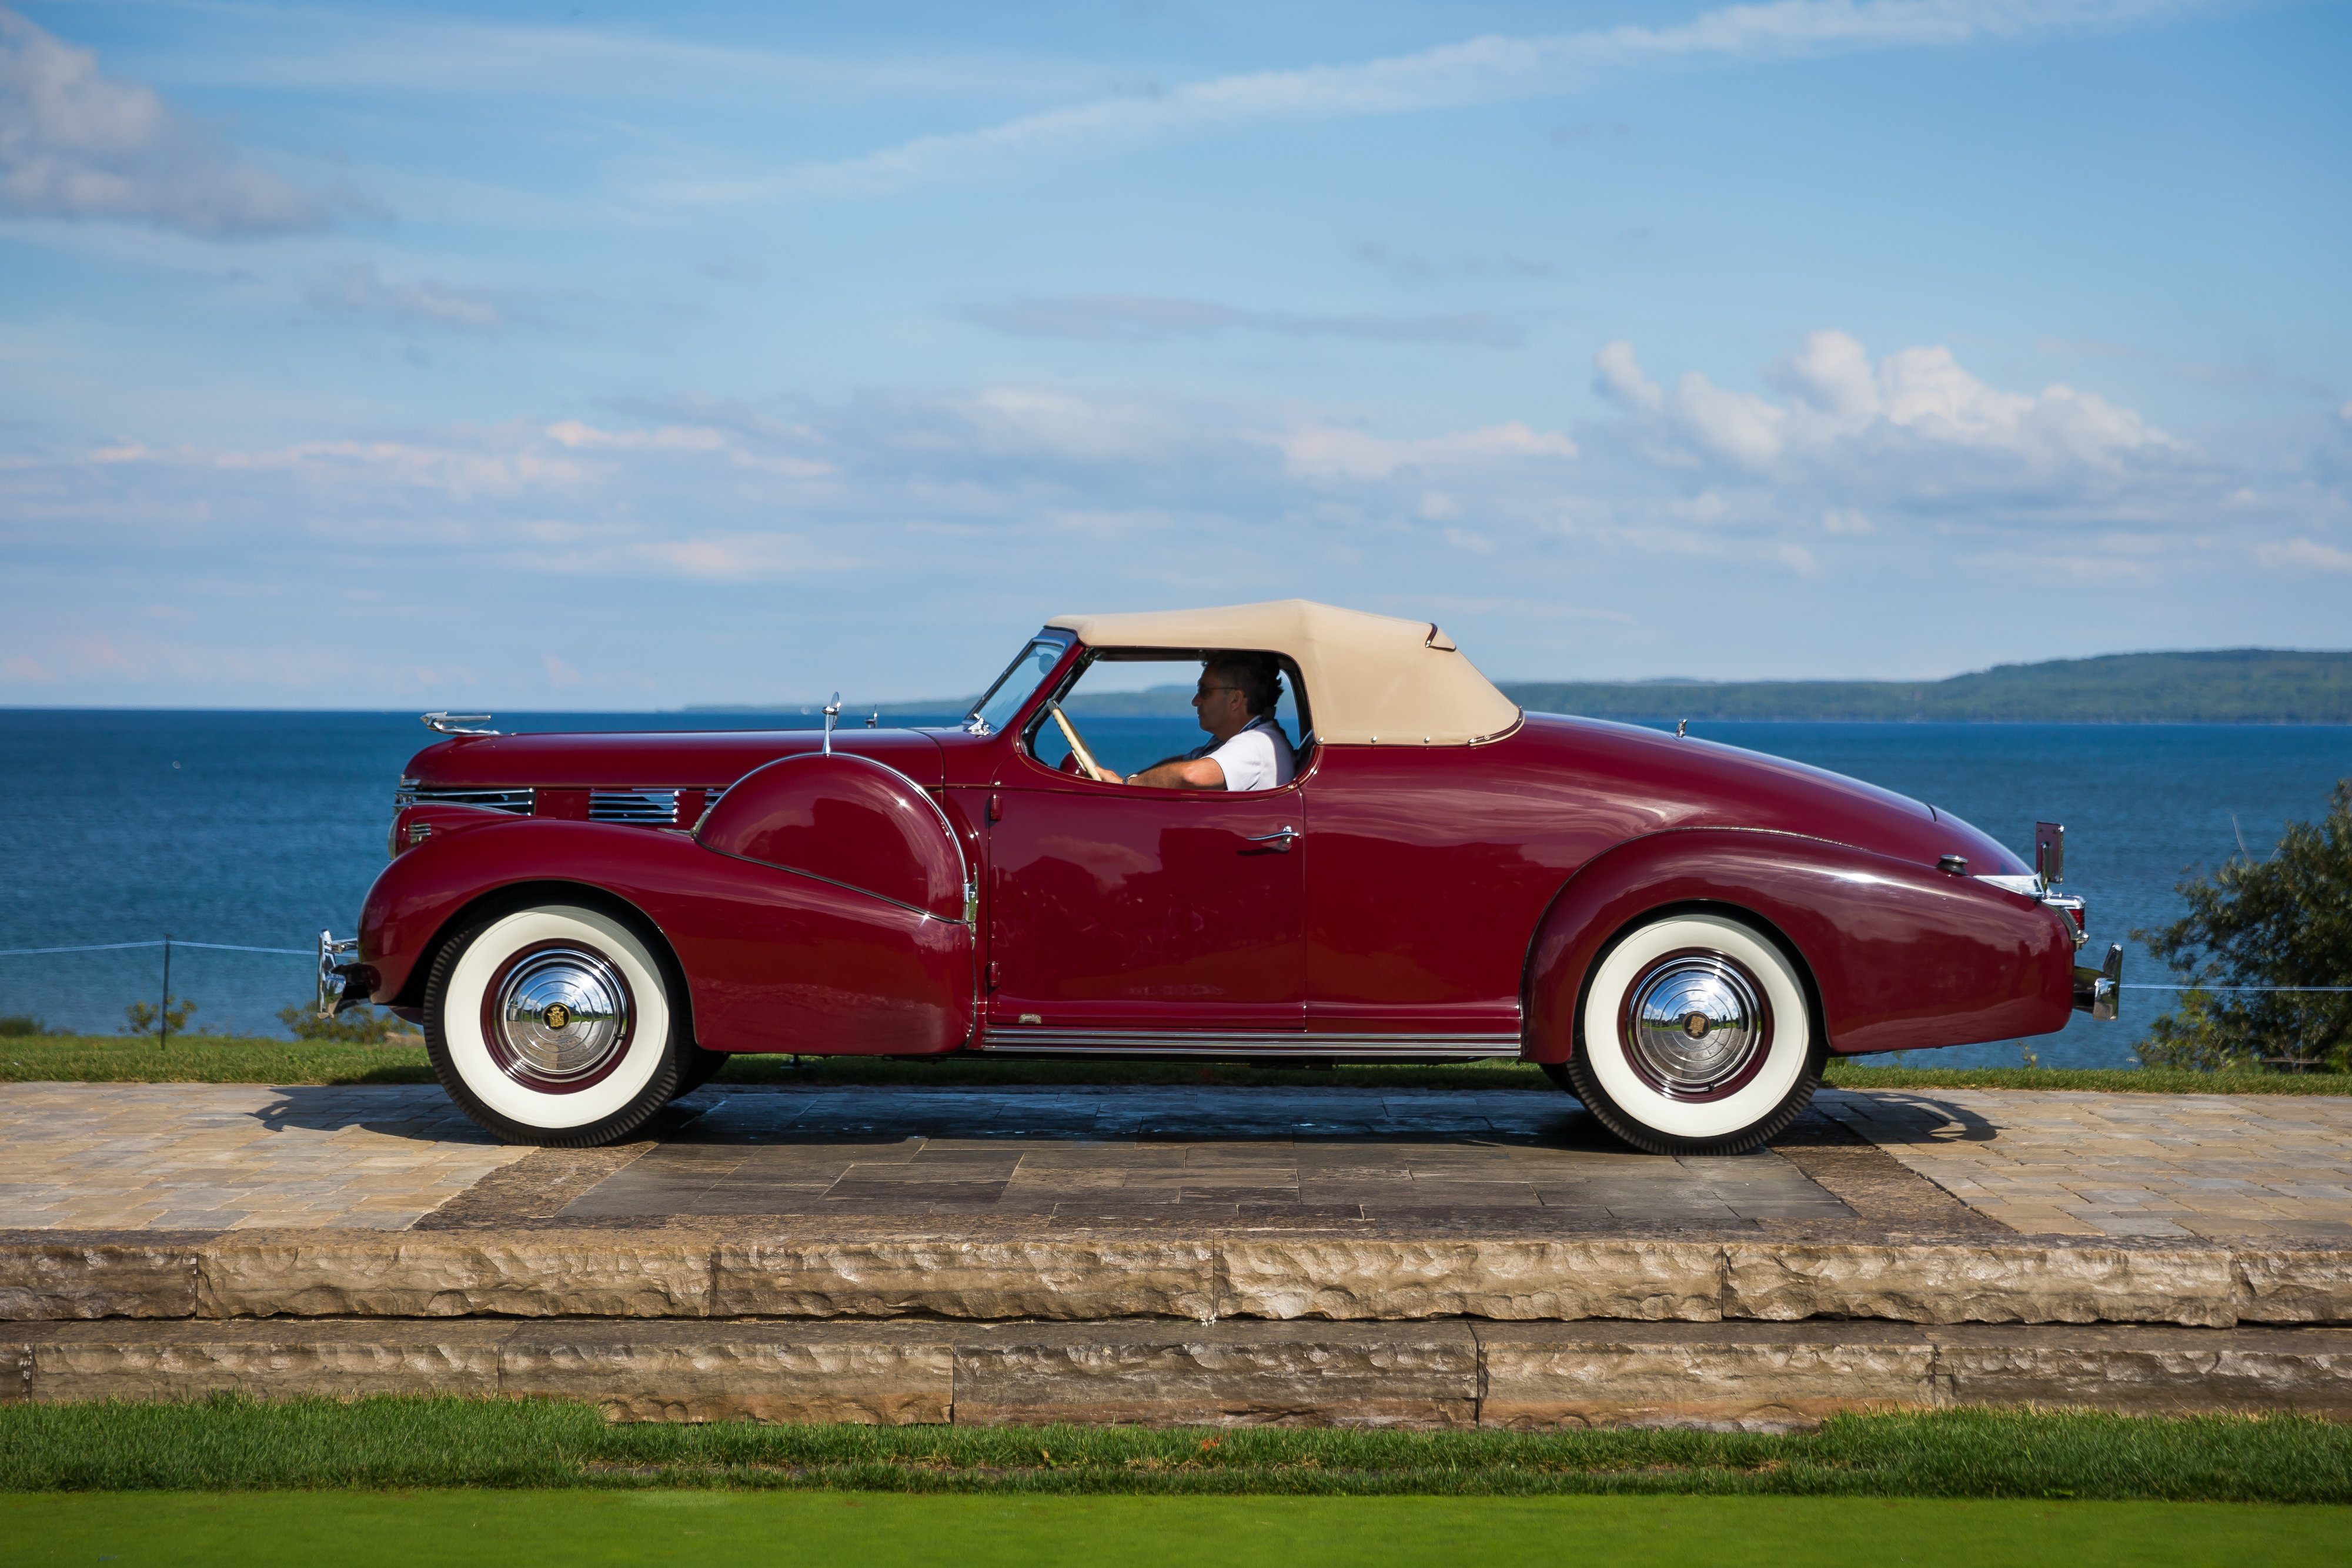 1938 Cadillac Brunn Bodied Roadster- NAACC Award